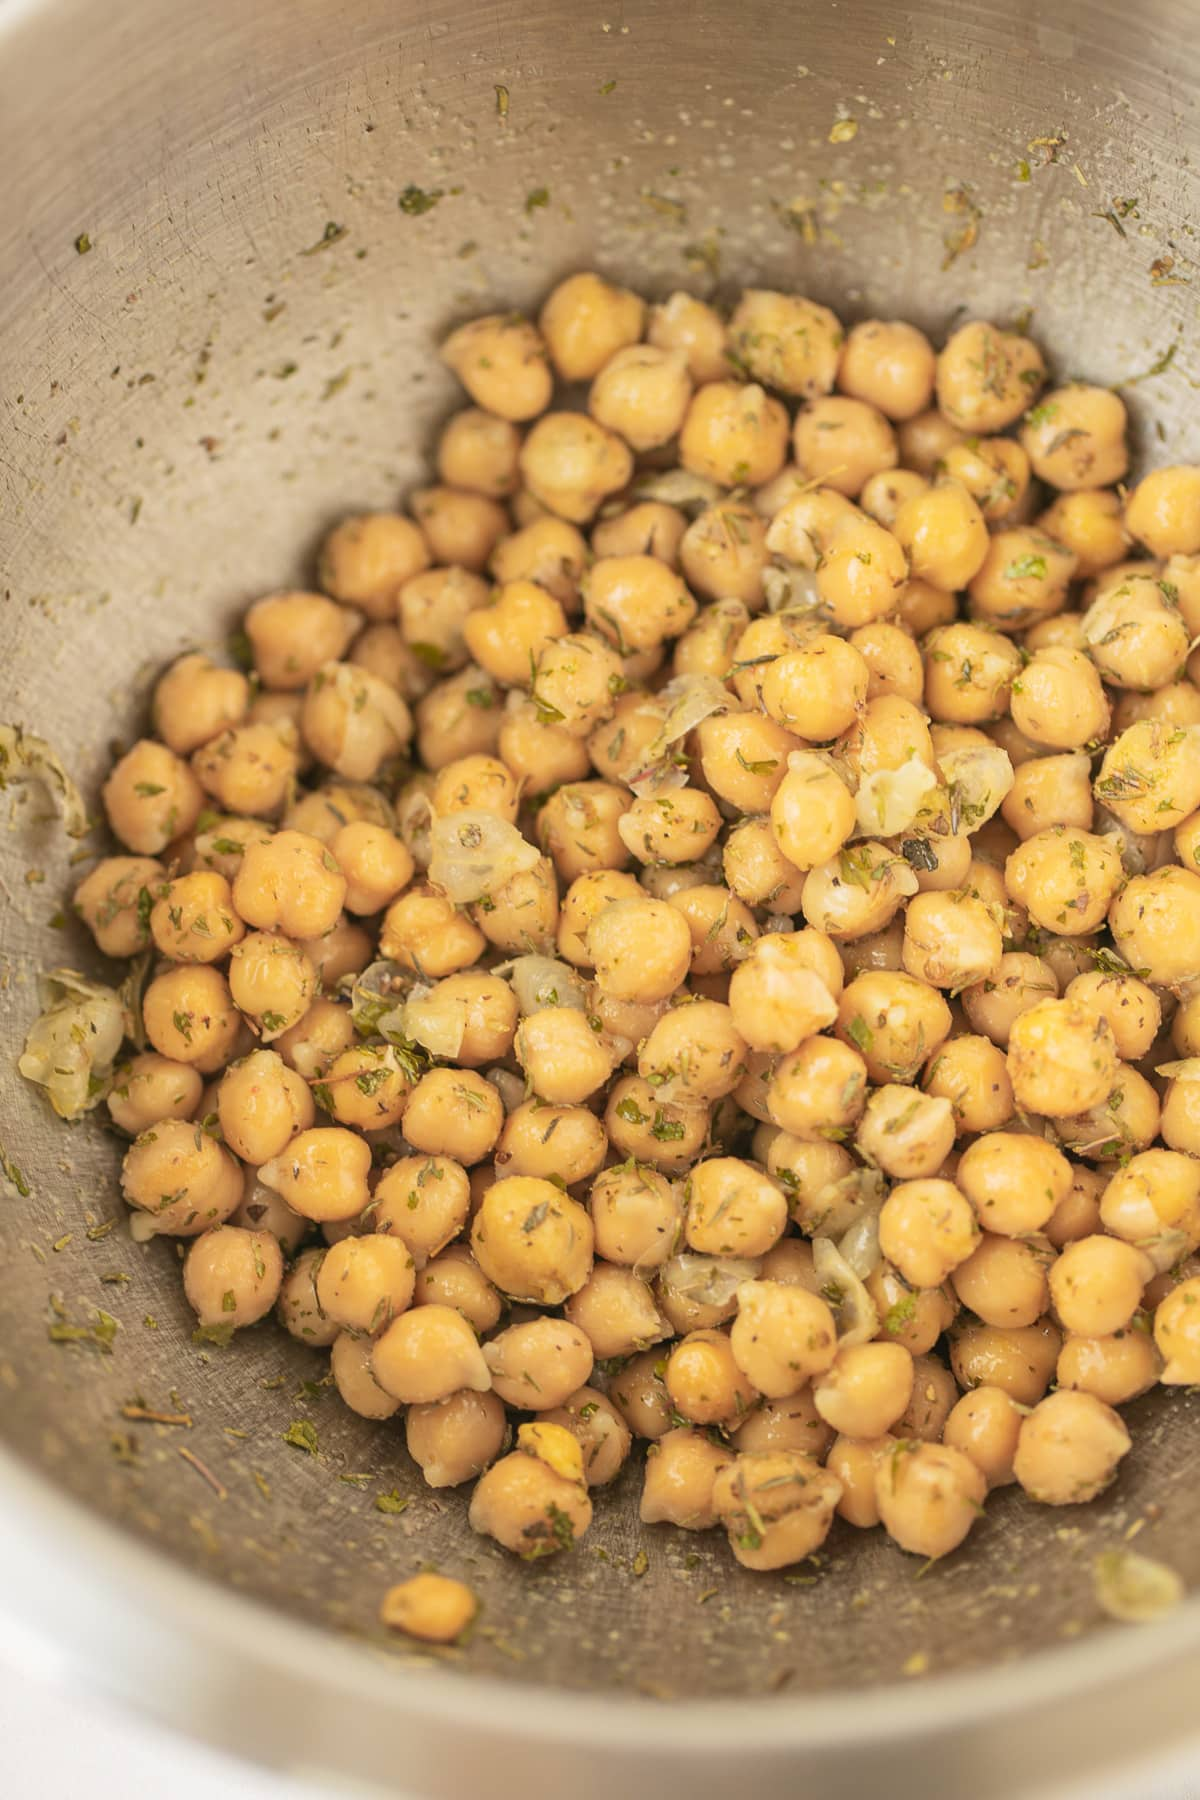 chickpeas with spices in a bowl